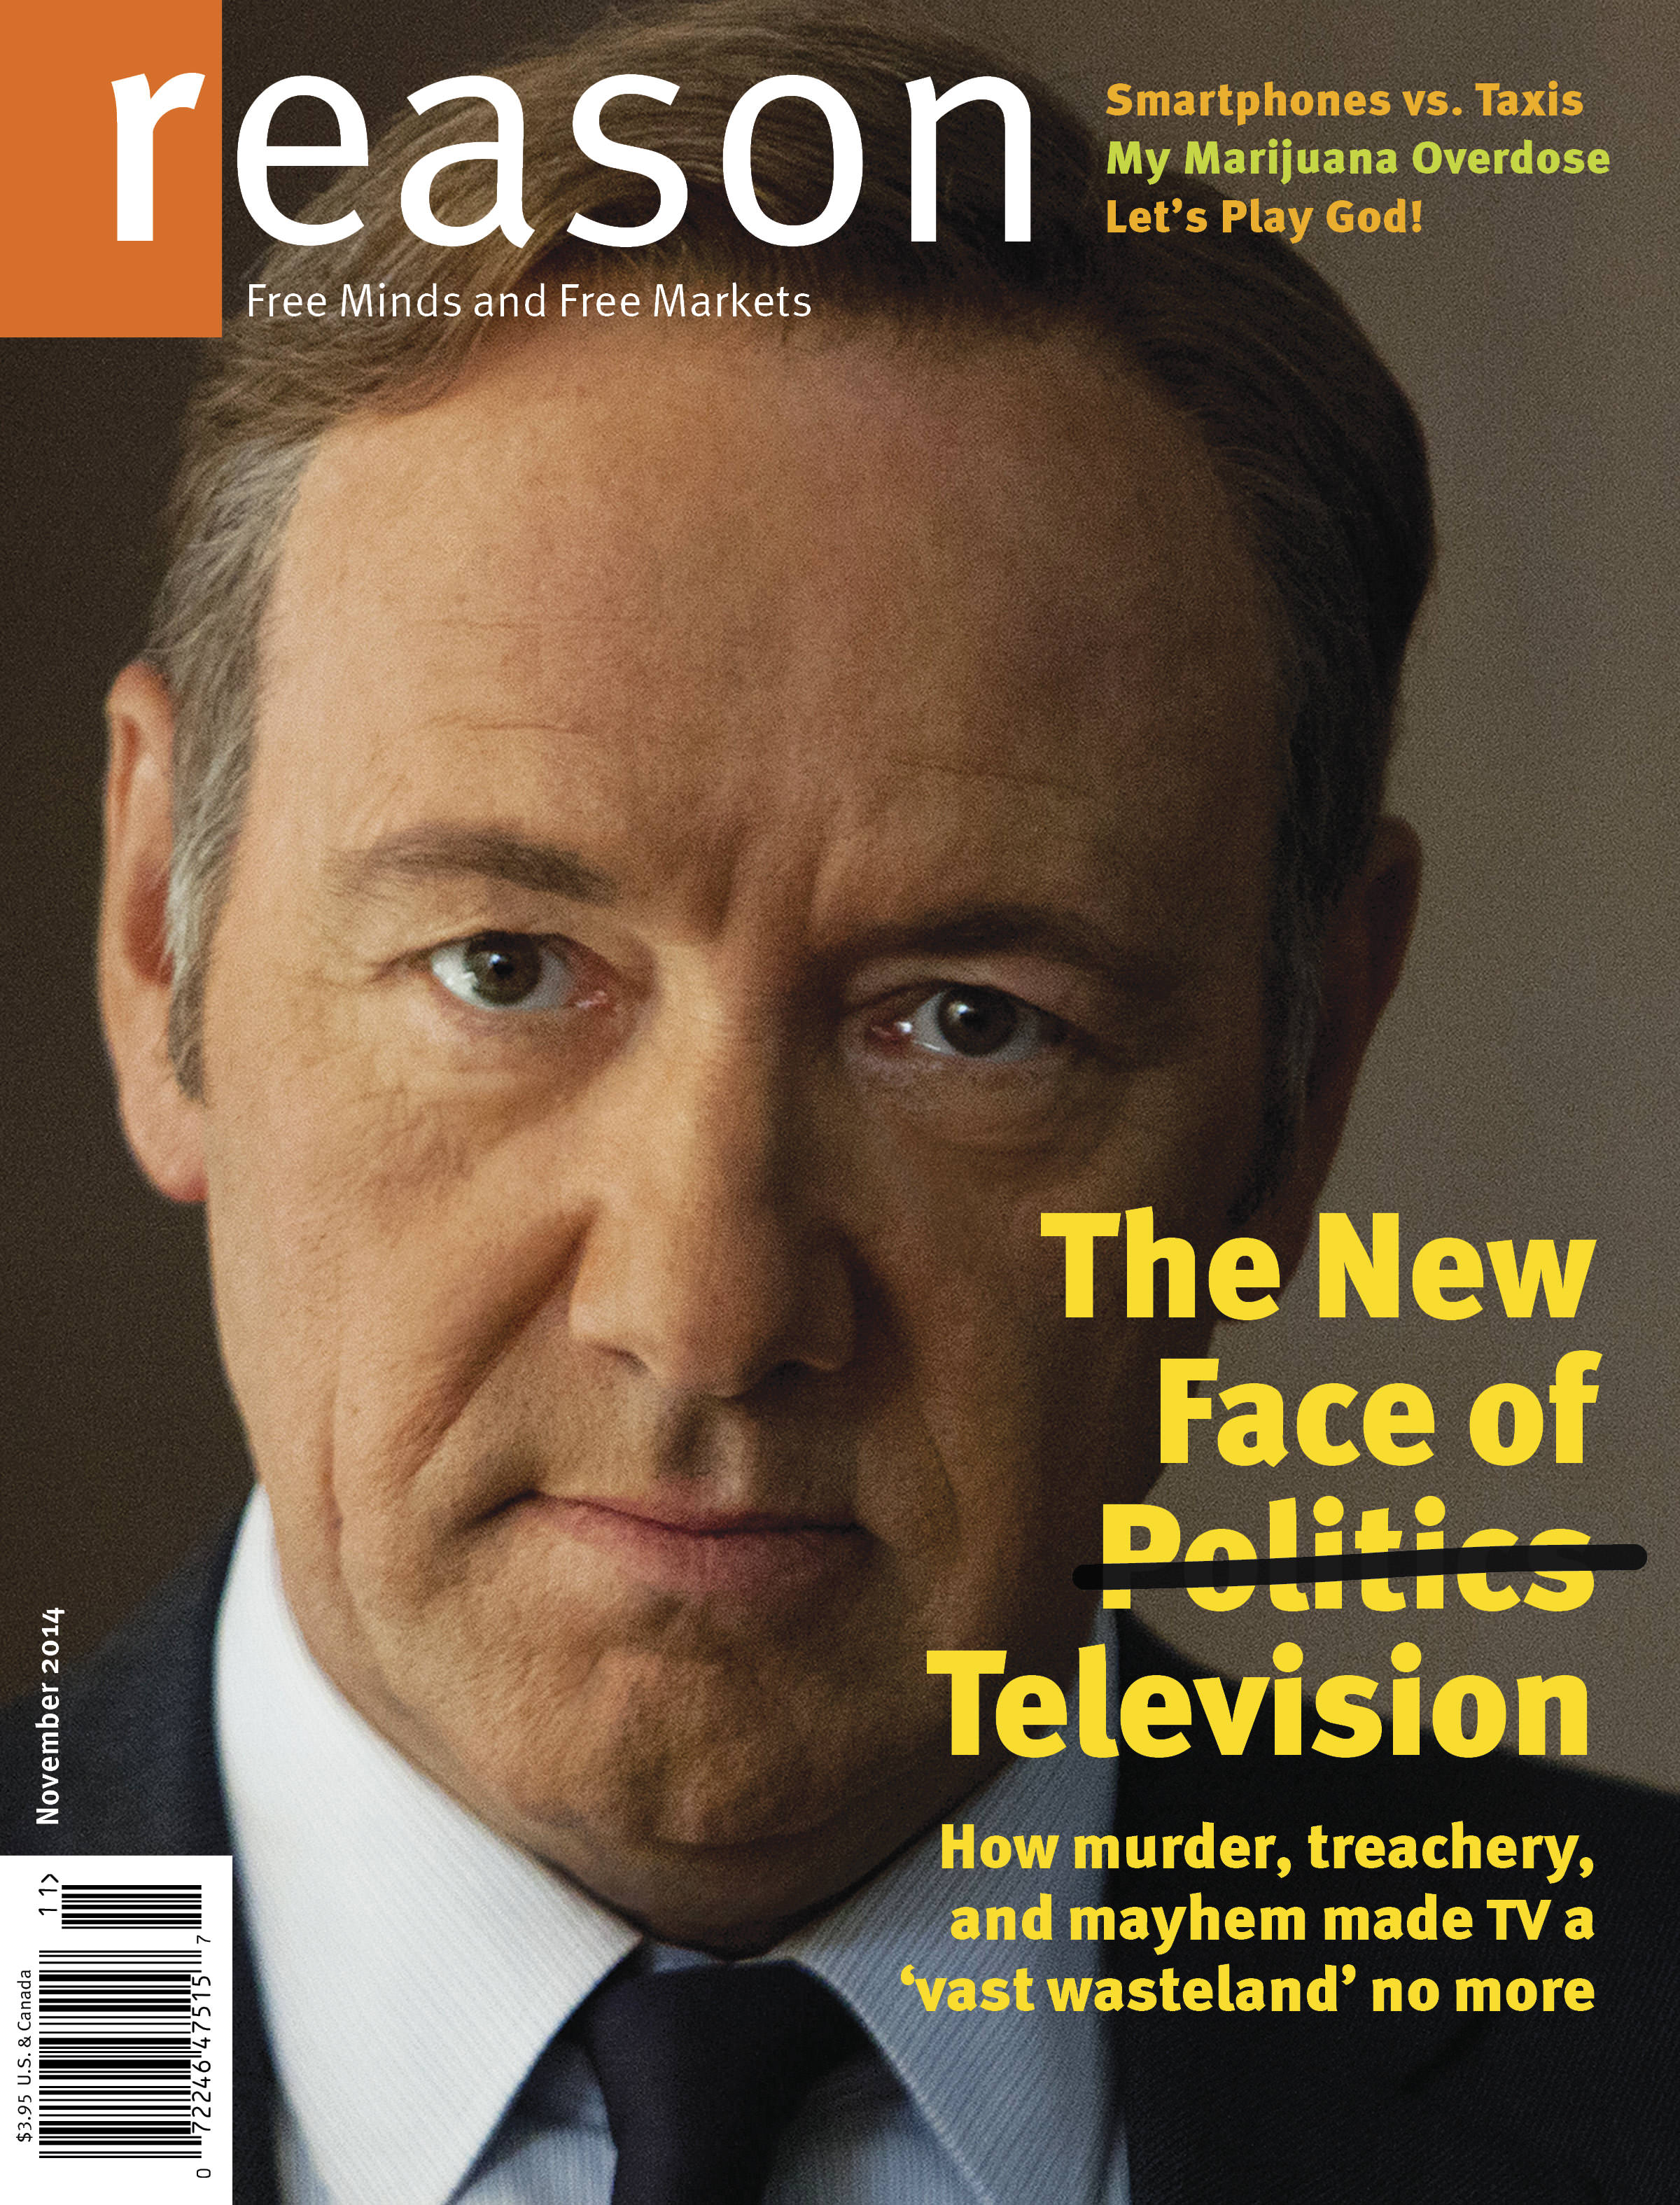 Reason Magazine, November 2014 cover image